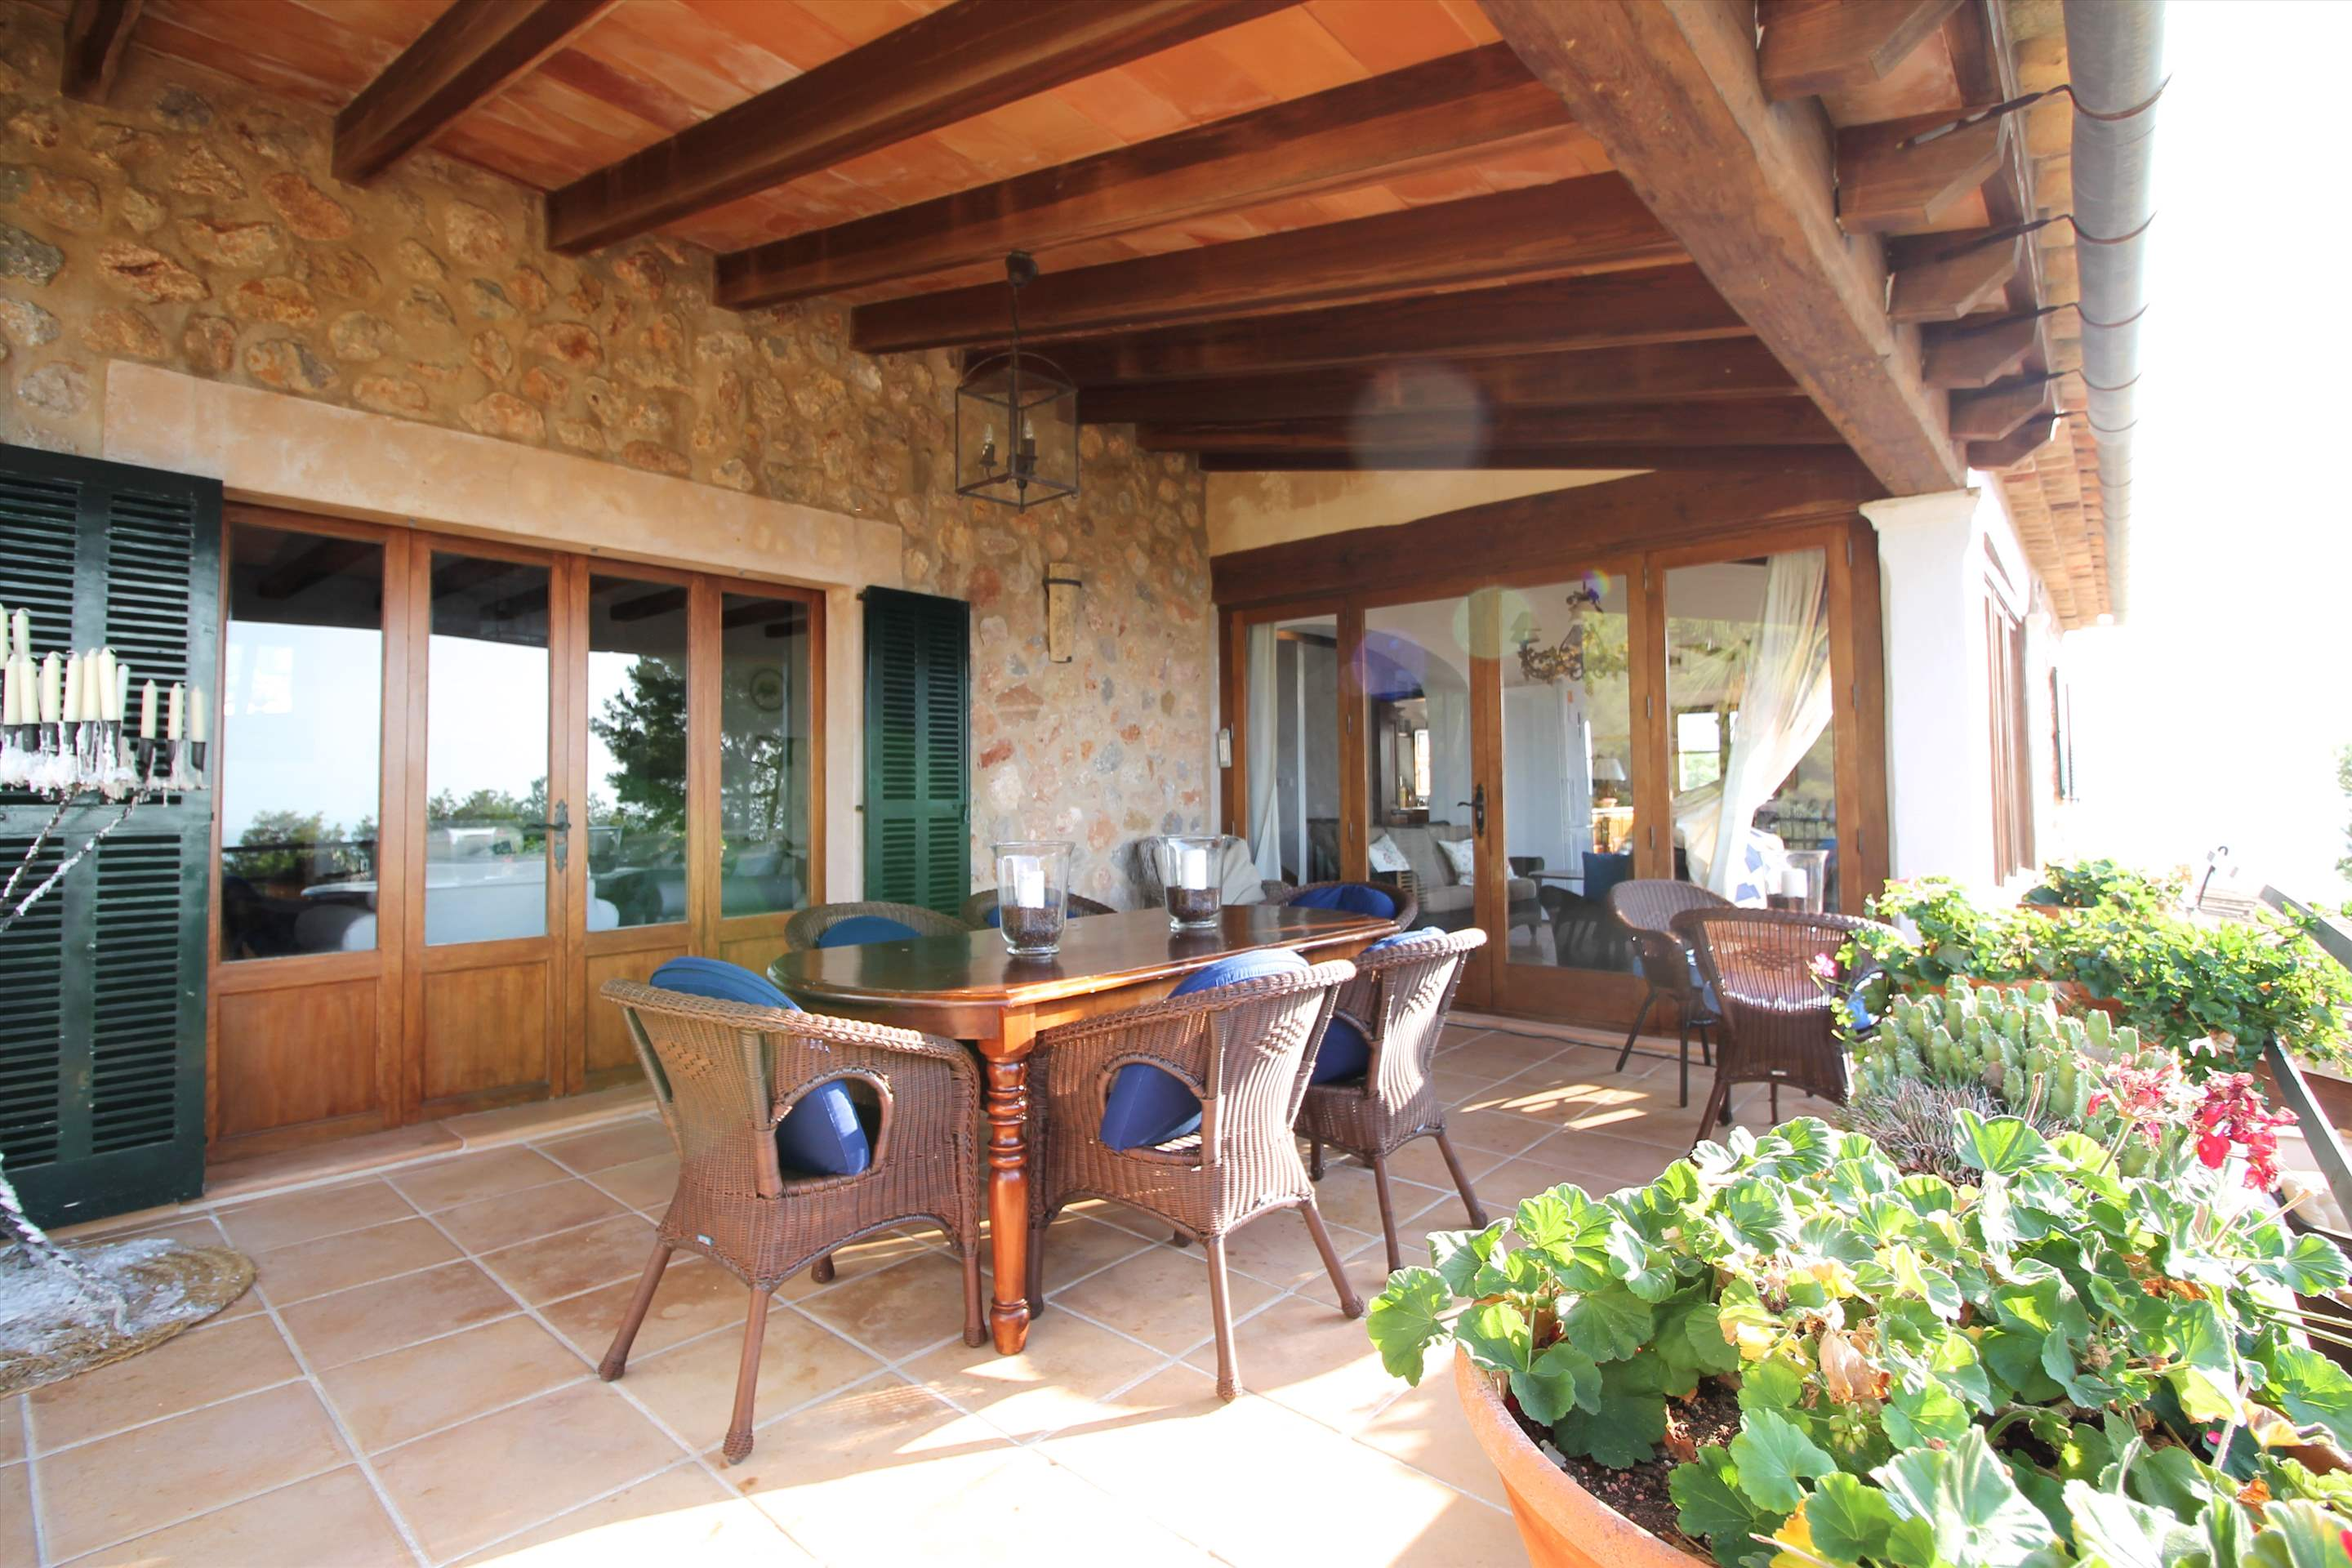 Can Winando, 4 Bedroom Rental, 4 bedroom villa in Soller & Deia, Majorca Photo #16